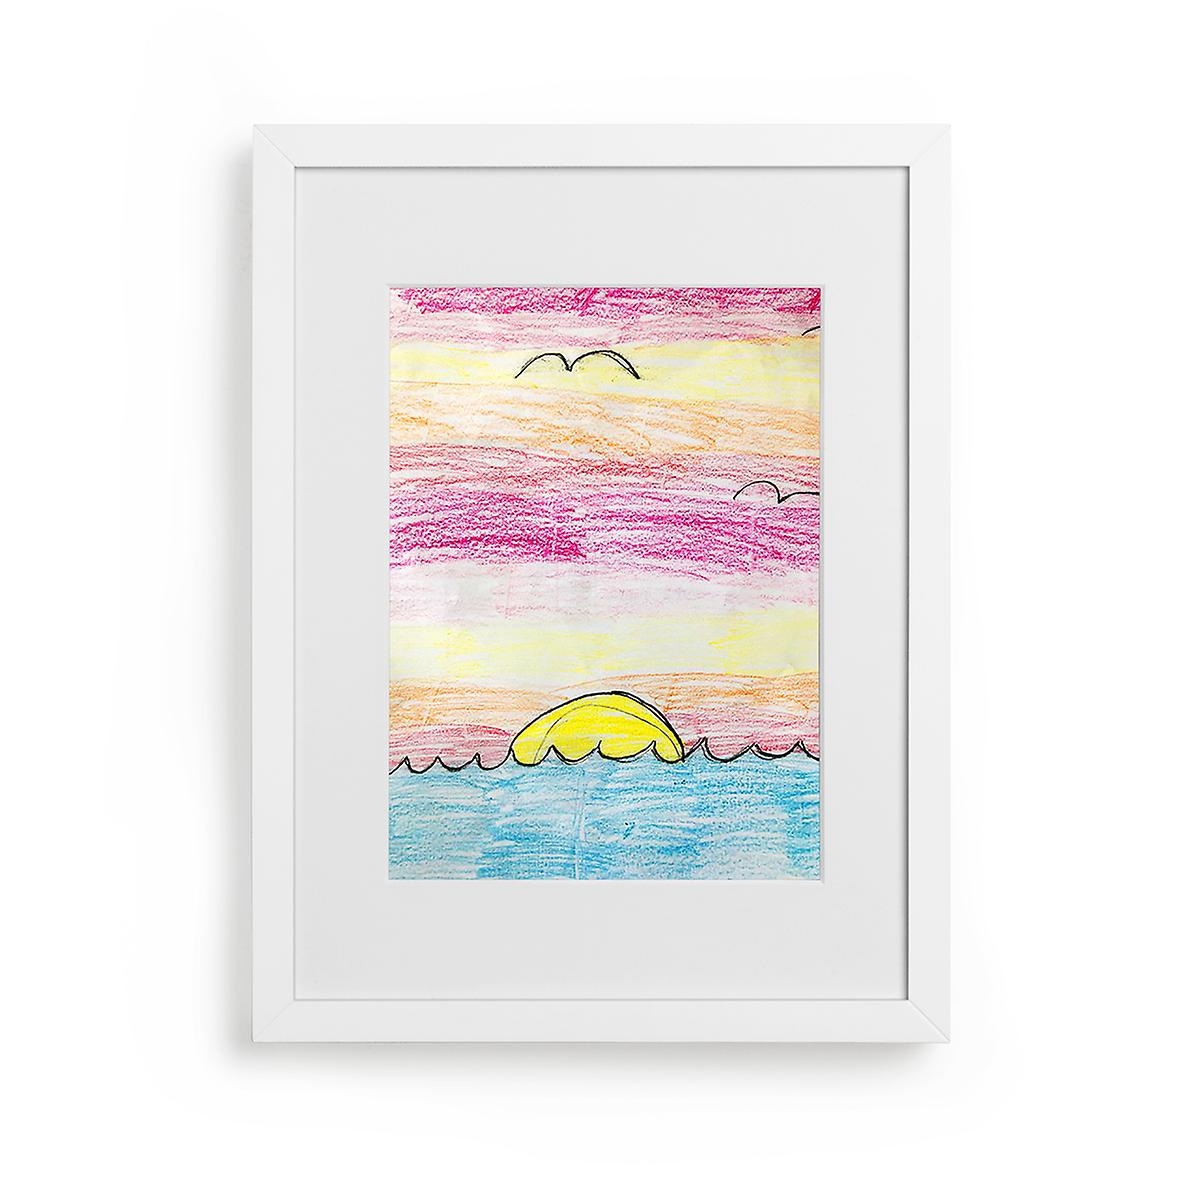 Umbra Artista Kids Art Frame